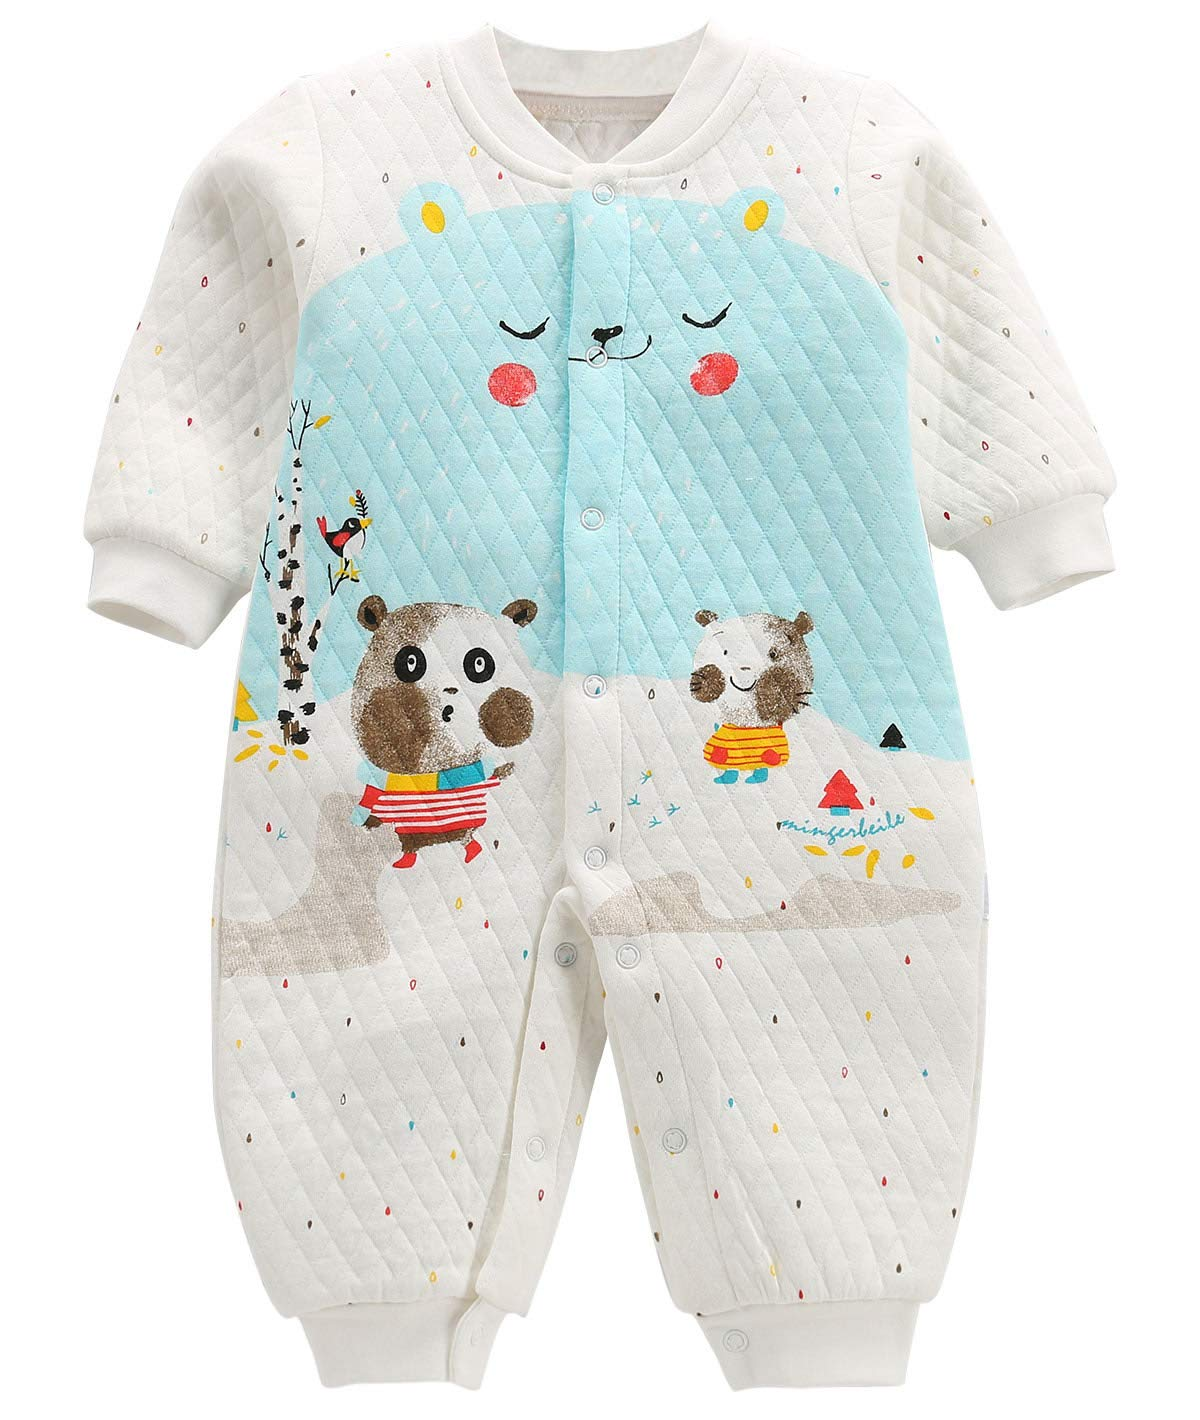 FEOYA Unisex Baby Long Sleeve Cotton Romper Footless Jumpsuit One-Piece Coverall Cute Animal Printed Pajamas Sleep and Play